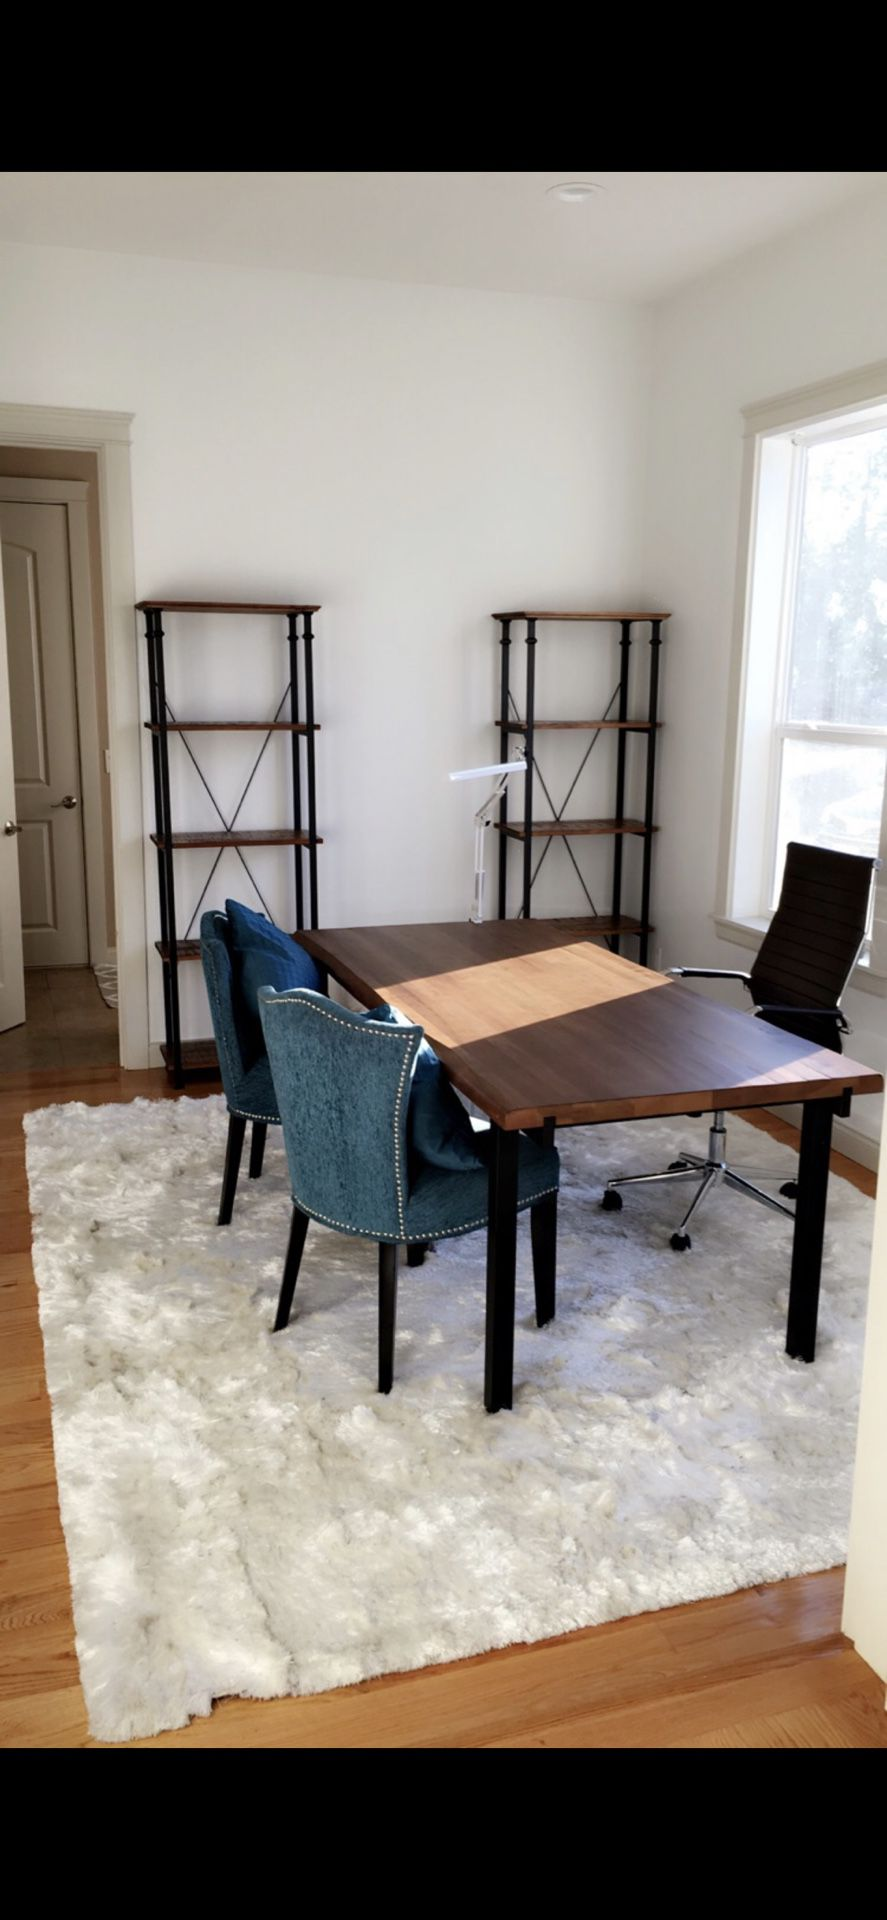 Chairs, dining room chairs or office